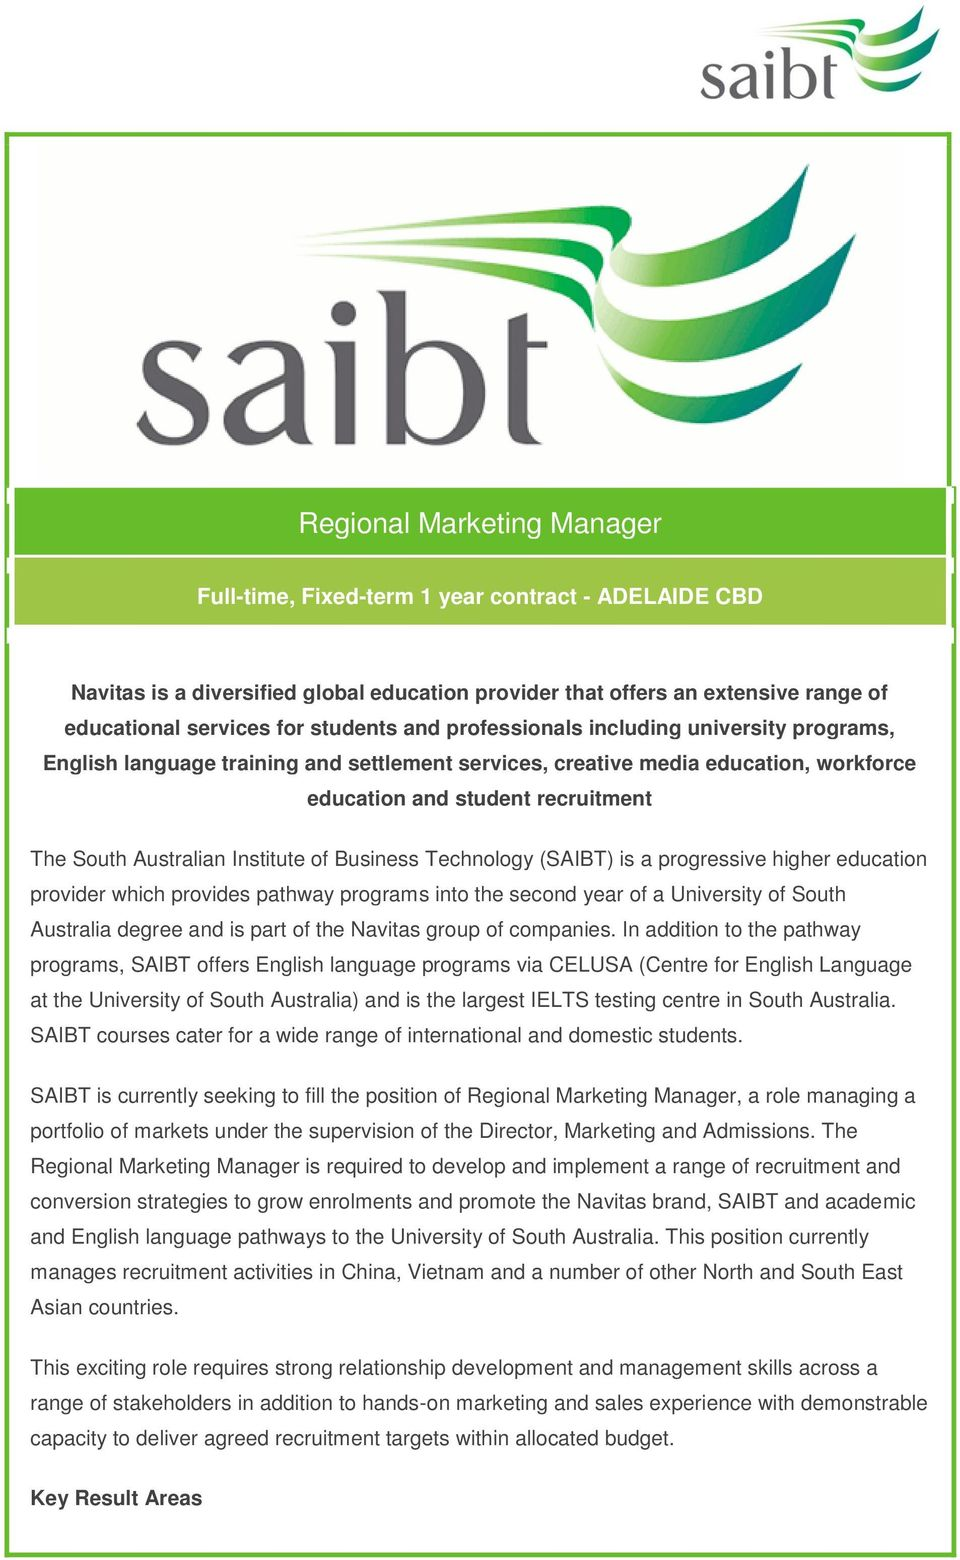 Institute of Business Technology (SAIBT) is a progressive higher education provider which provides pathway programs into the second year of a University of South Australia degree and is part of the